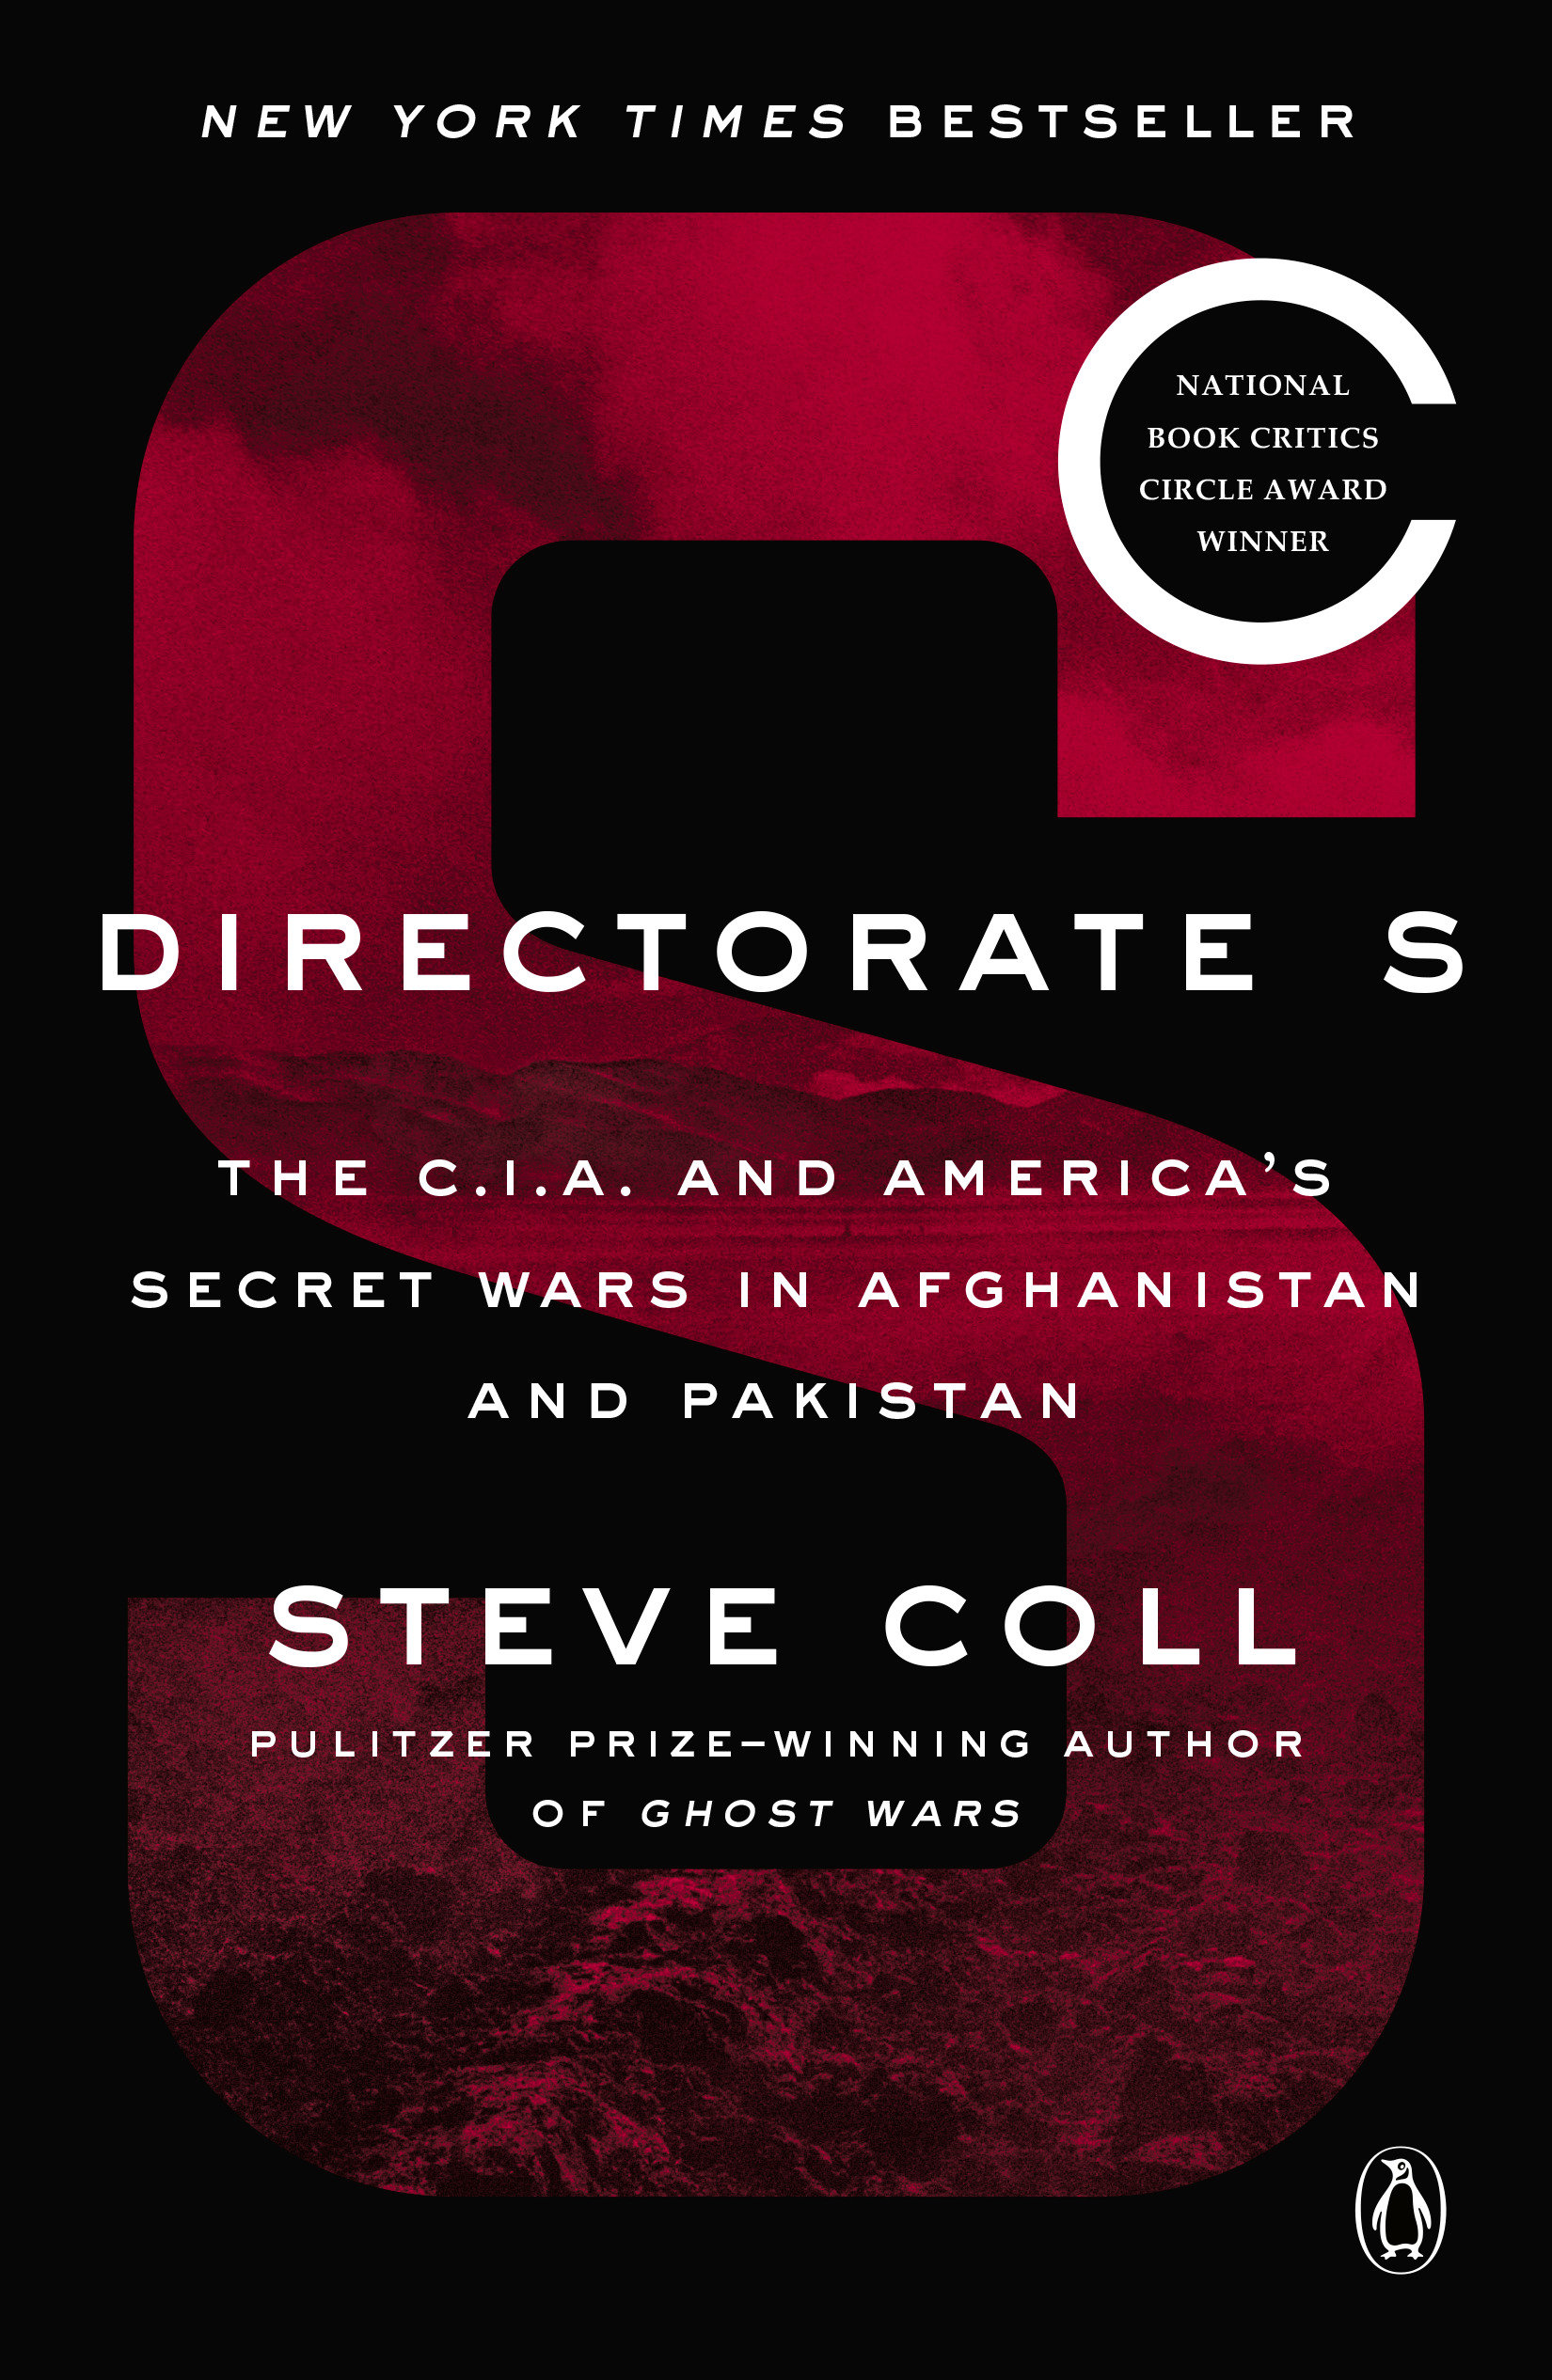 Directorate S the C.I.A. and America's secret wars in Afghanistan and Pakistan cover image